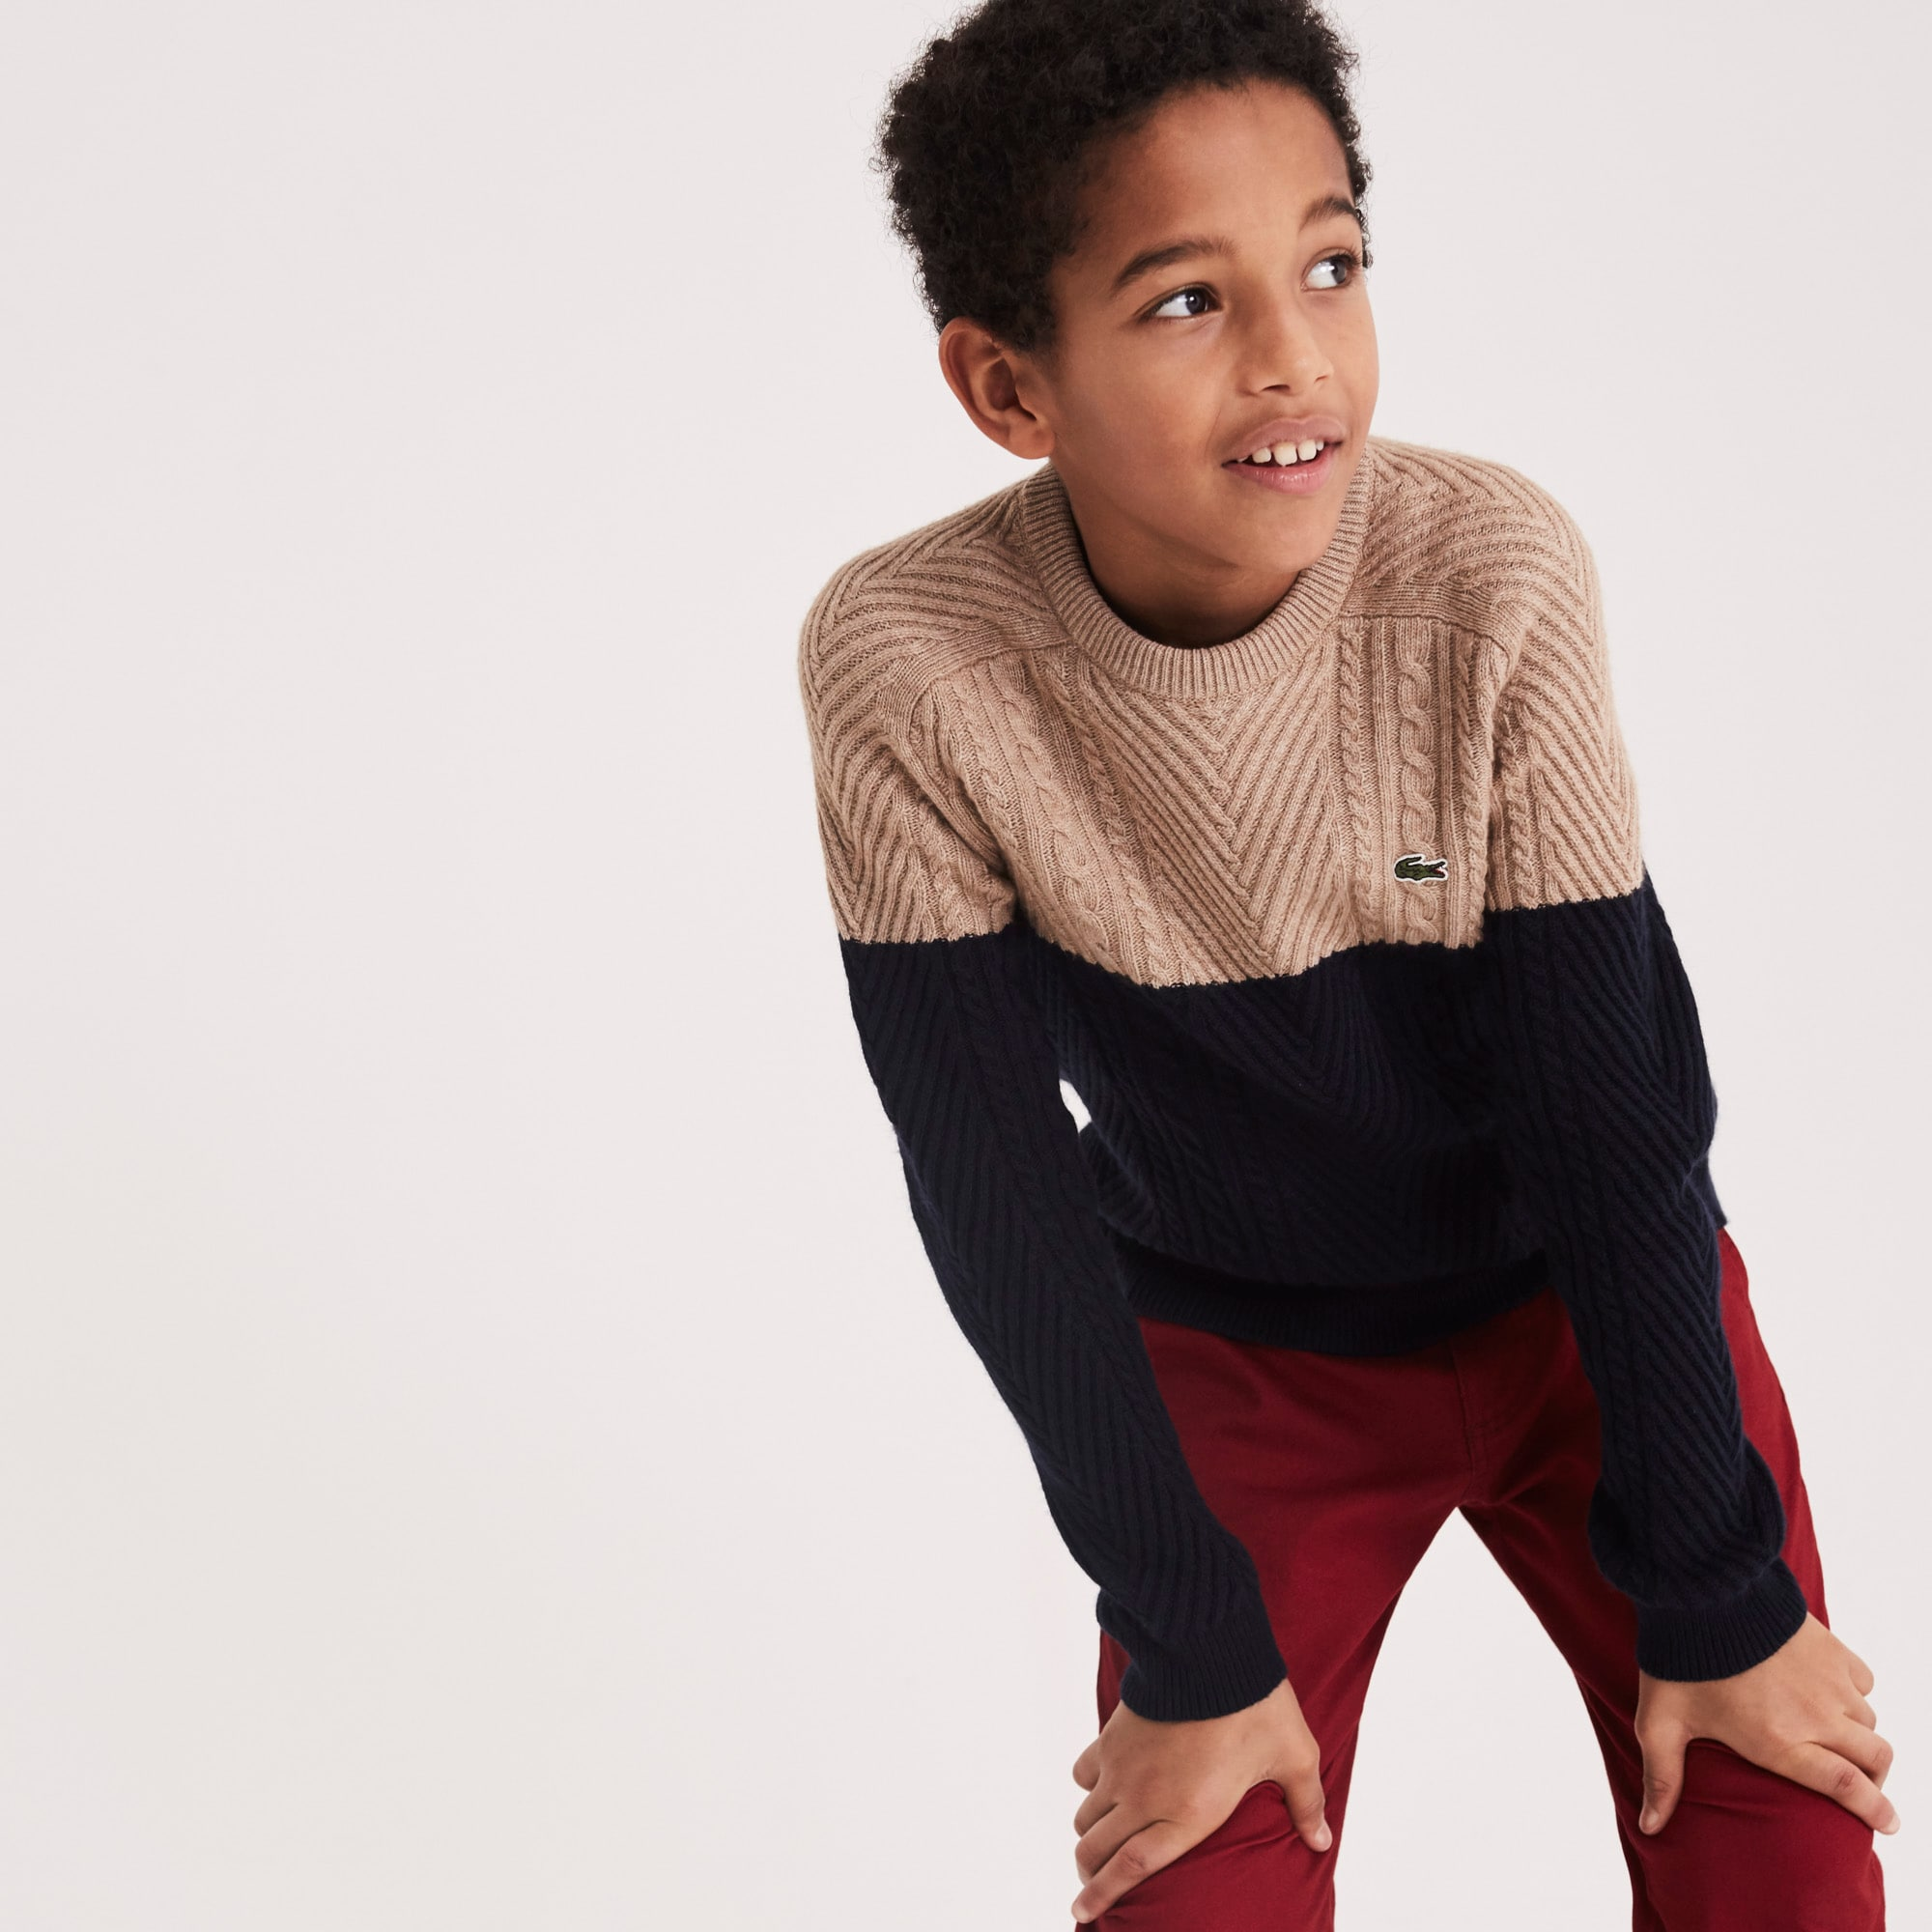 Boys' Crew Neck Cable Knit Colorblock Cotton Blend Sweater